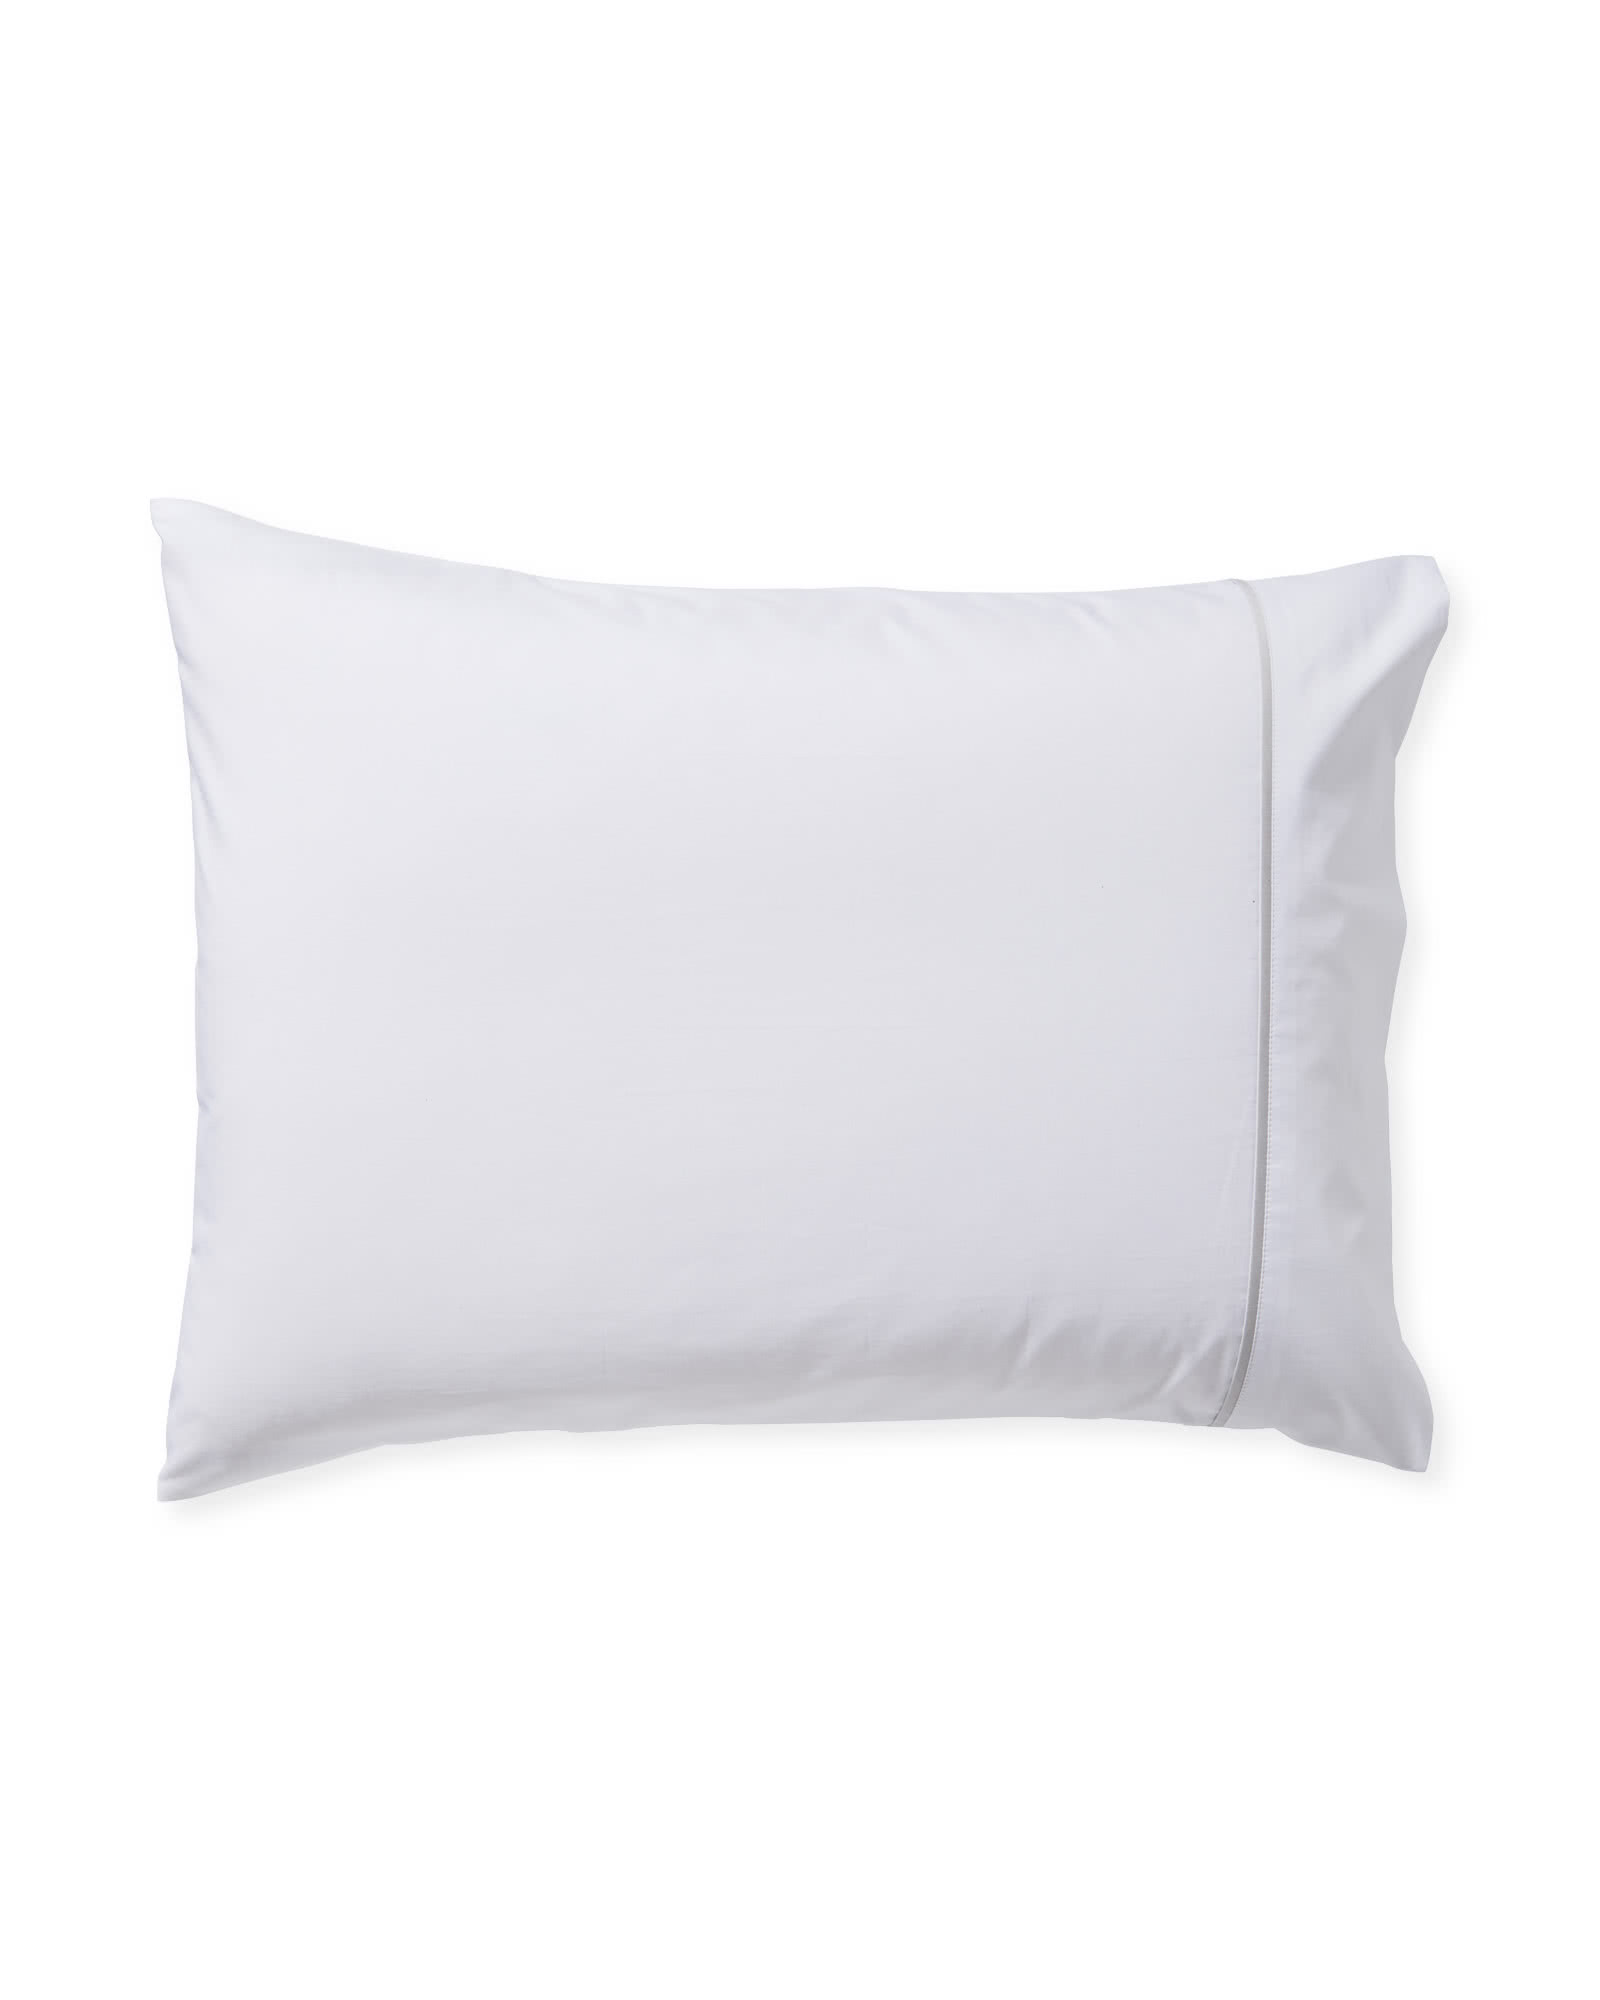 Beach Club Pillowcases (Extra Set of 2), Fog